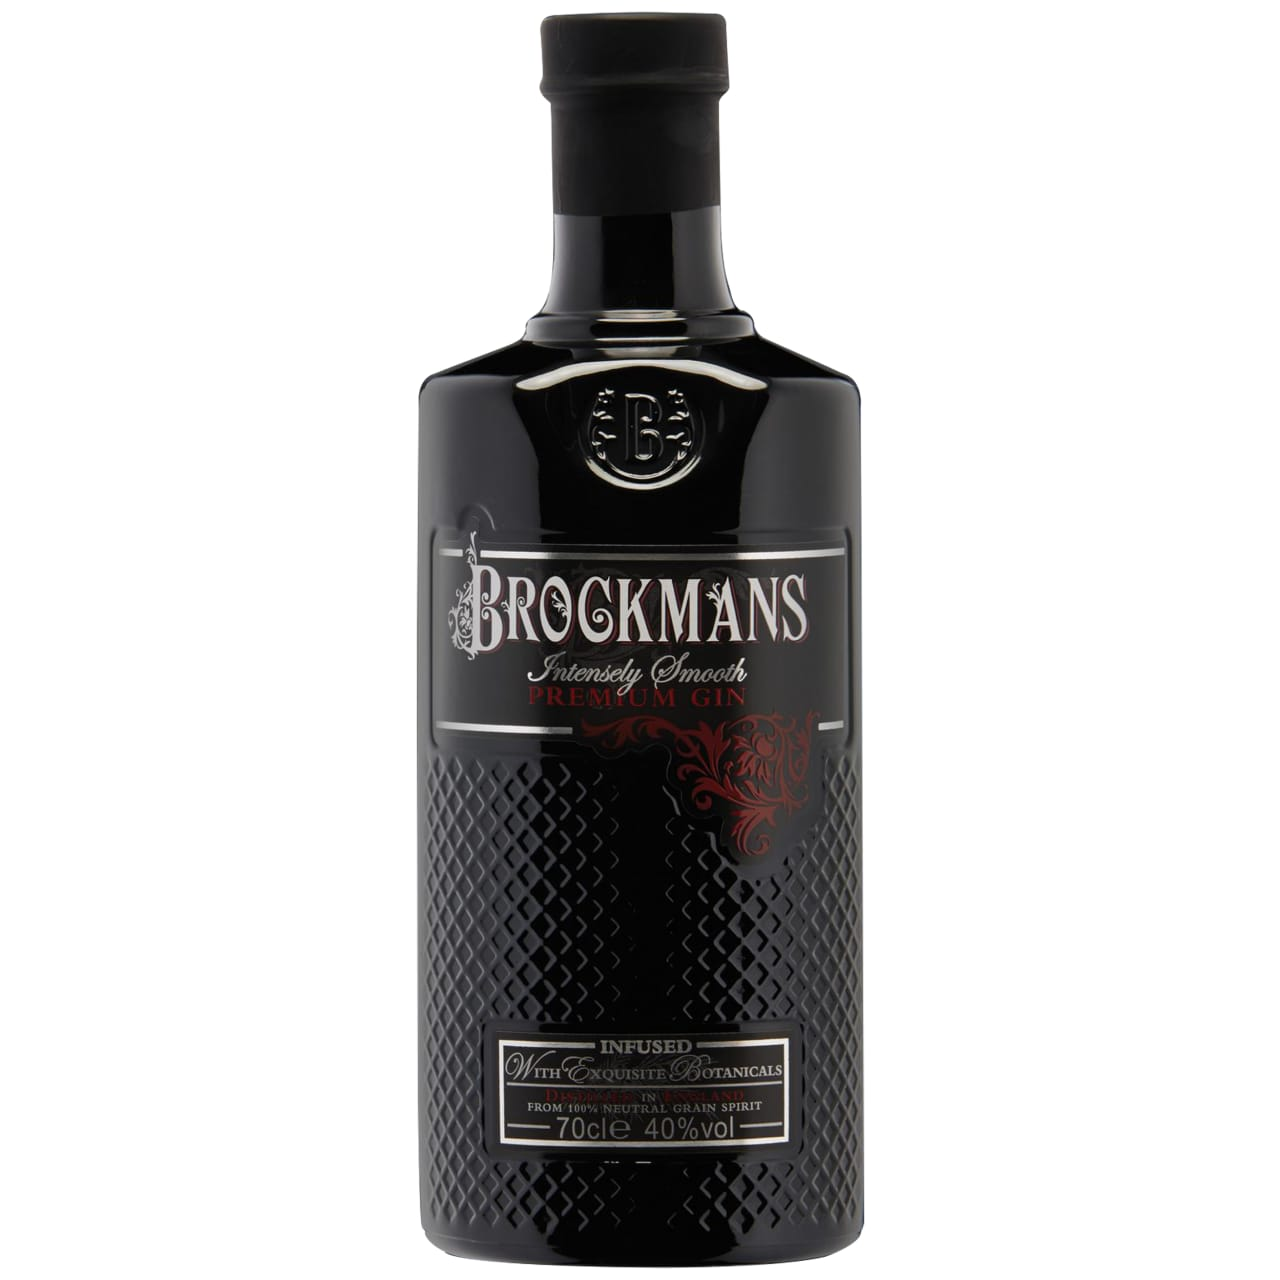 Product Image - Brockmans Intensely Smooth Gin